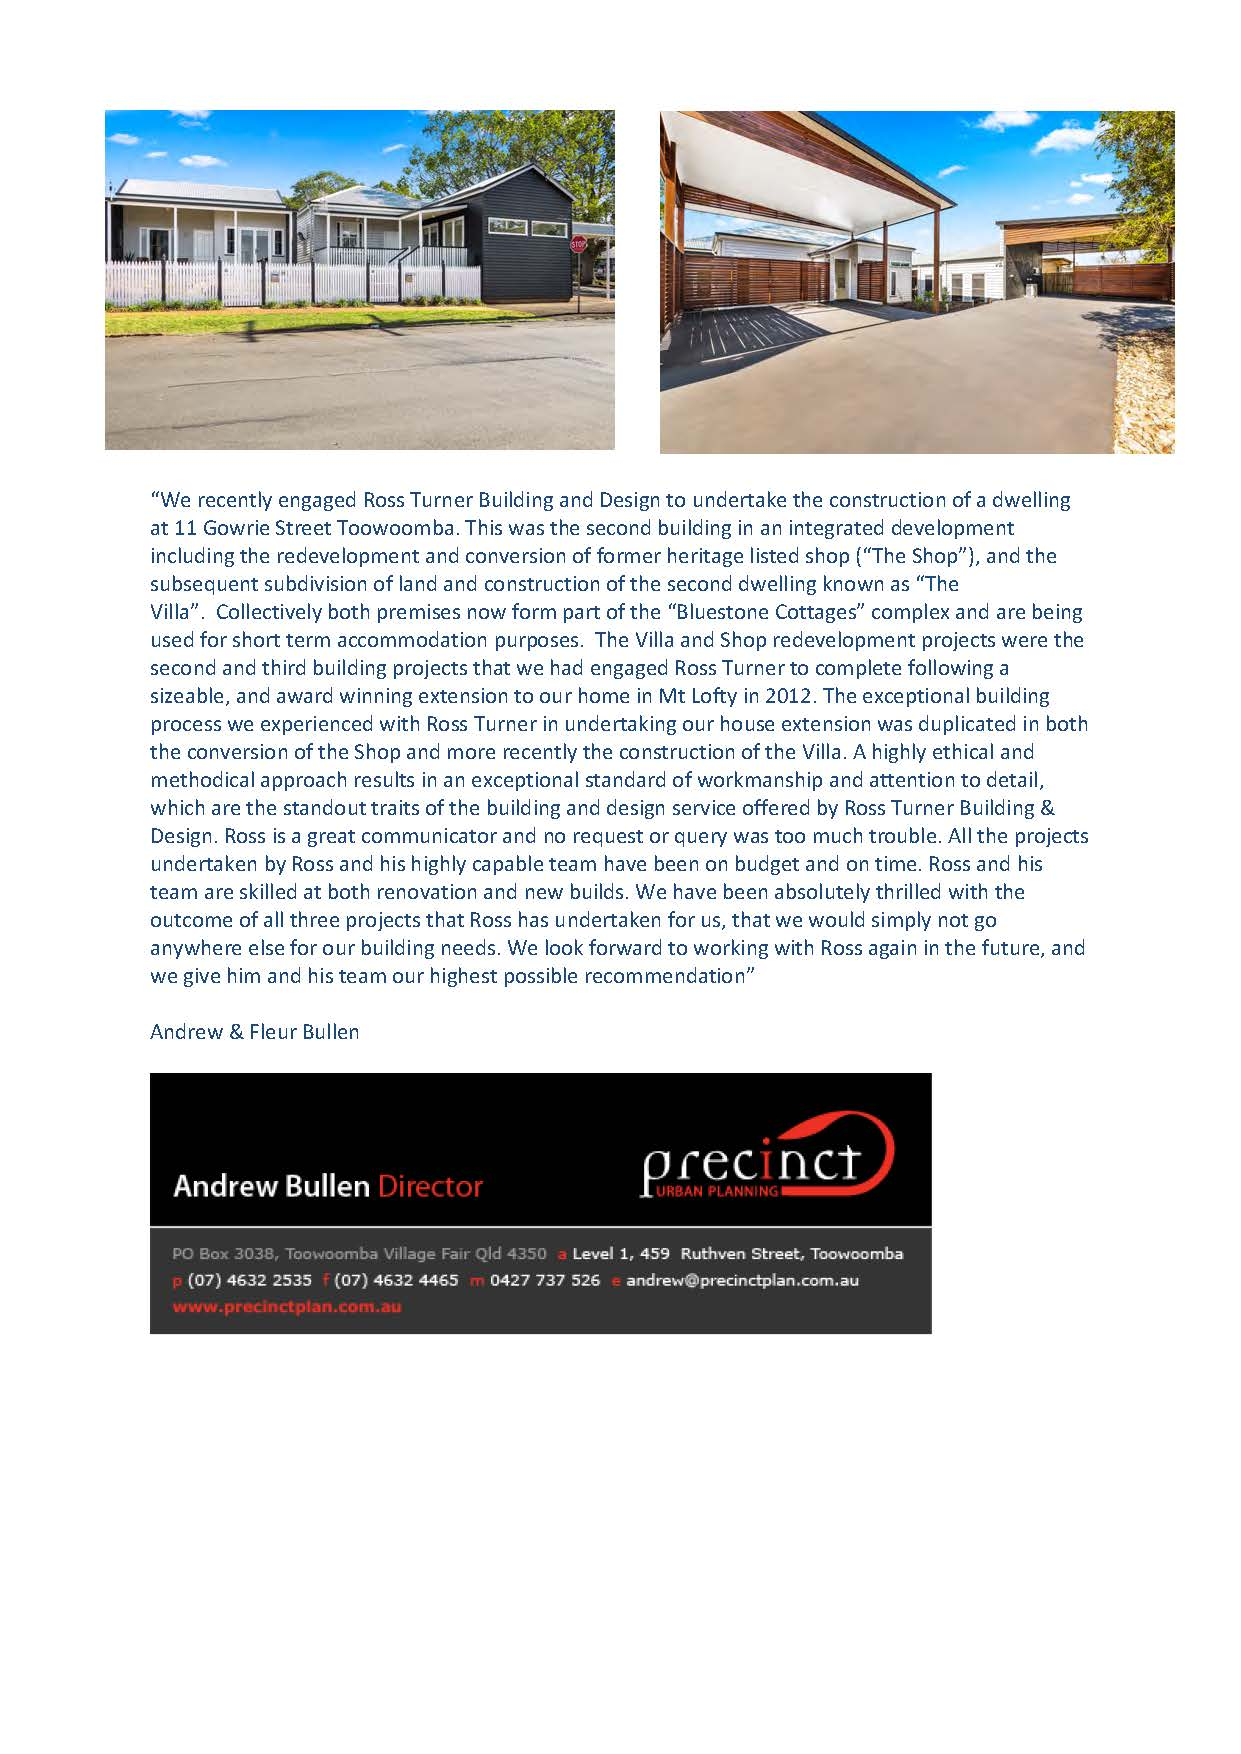 Ross Turner Building and Design - Builders & Building